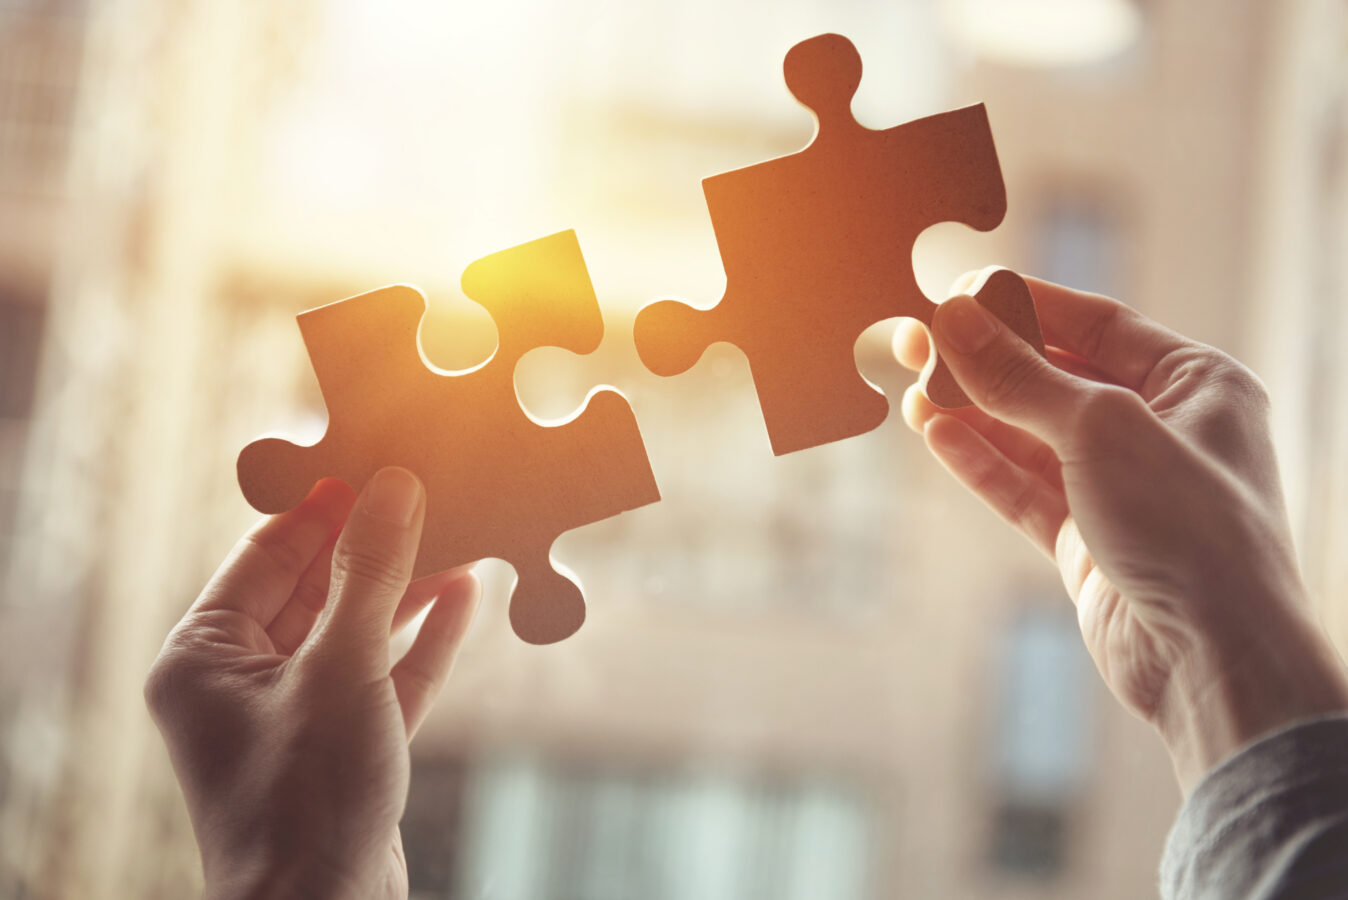 an image showing two hands connecting a puzzle. This is a symbol for CX strategy.